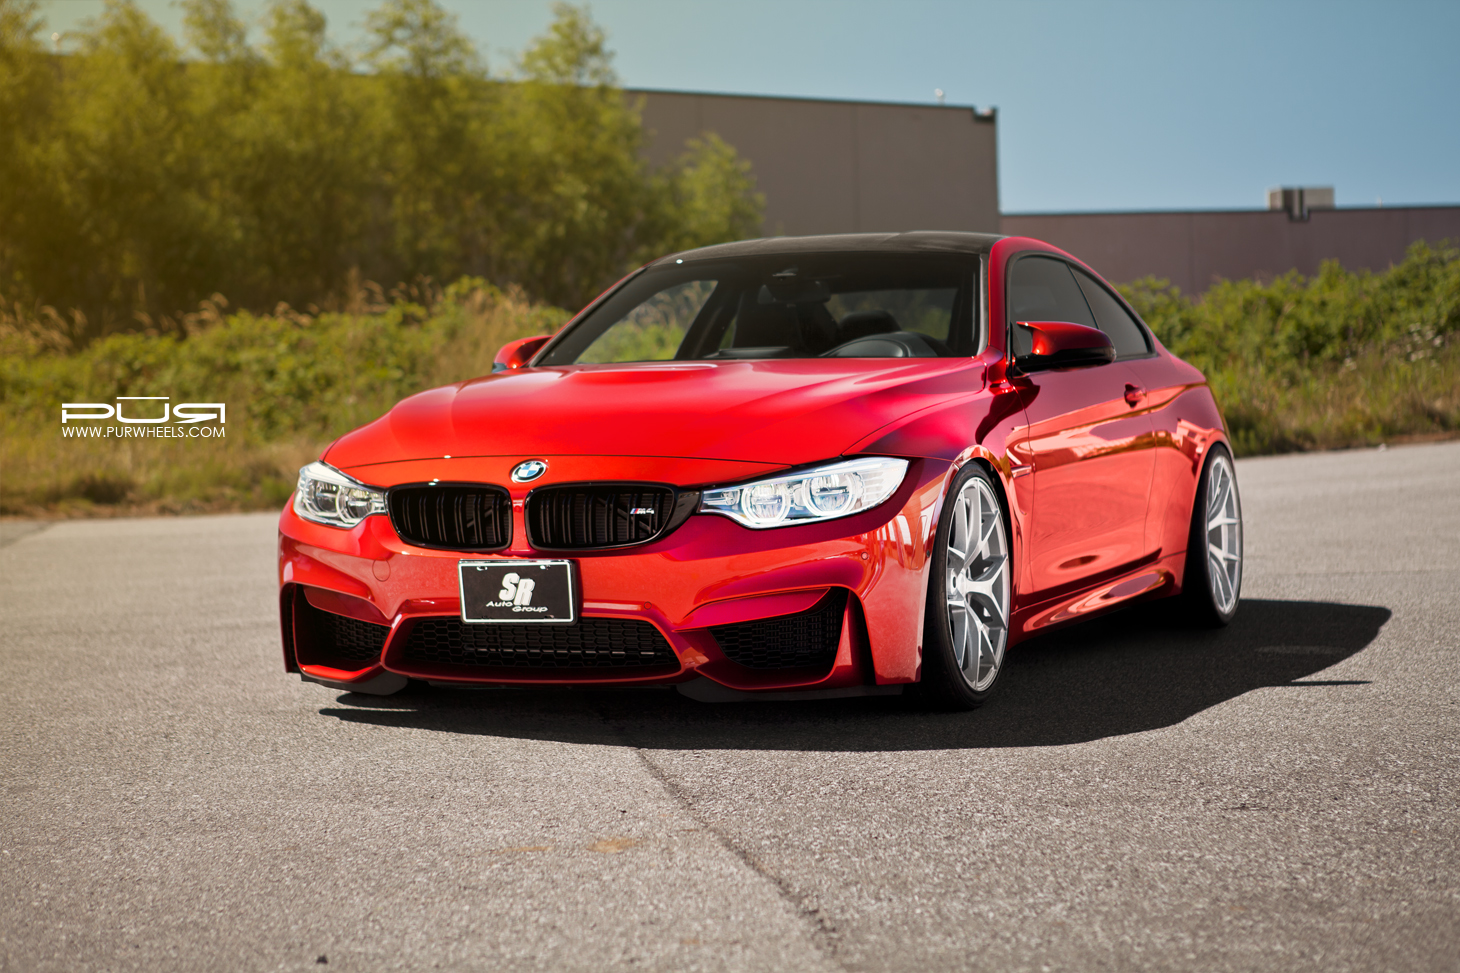 Tuned Sakhir Orange Bmw M4 Is Fiery Hot Autoevolution